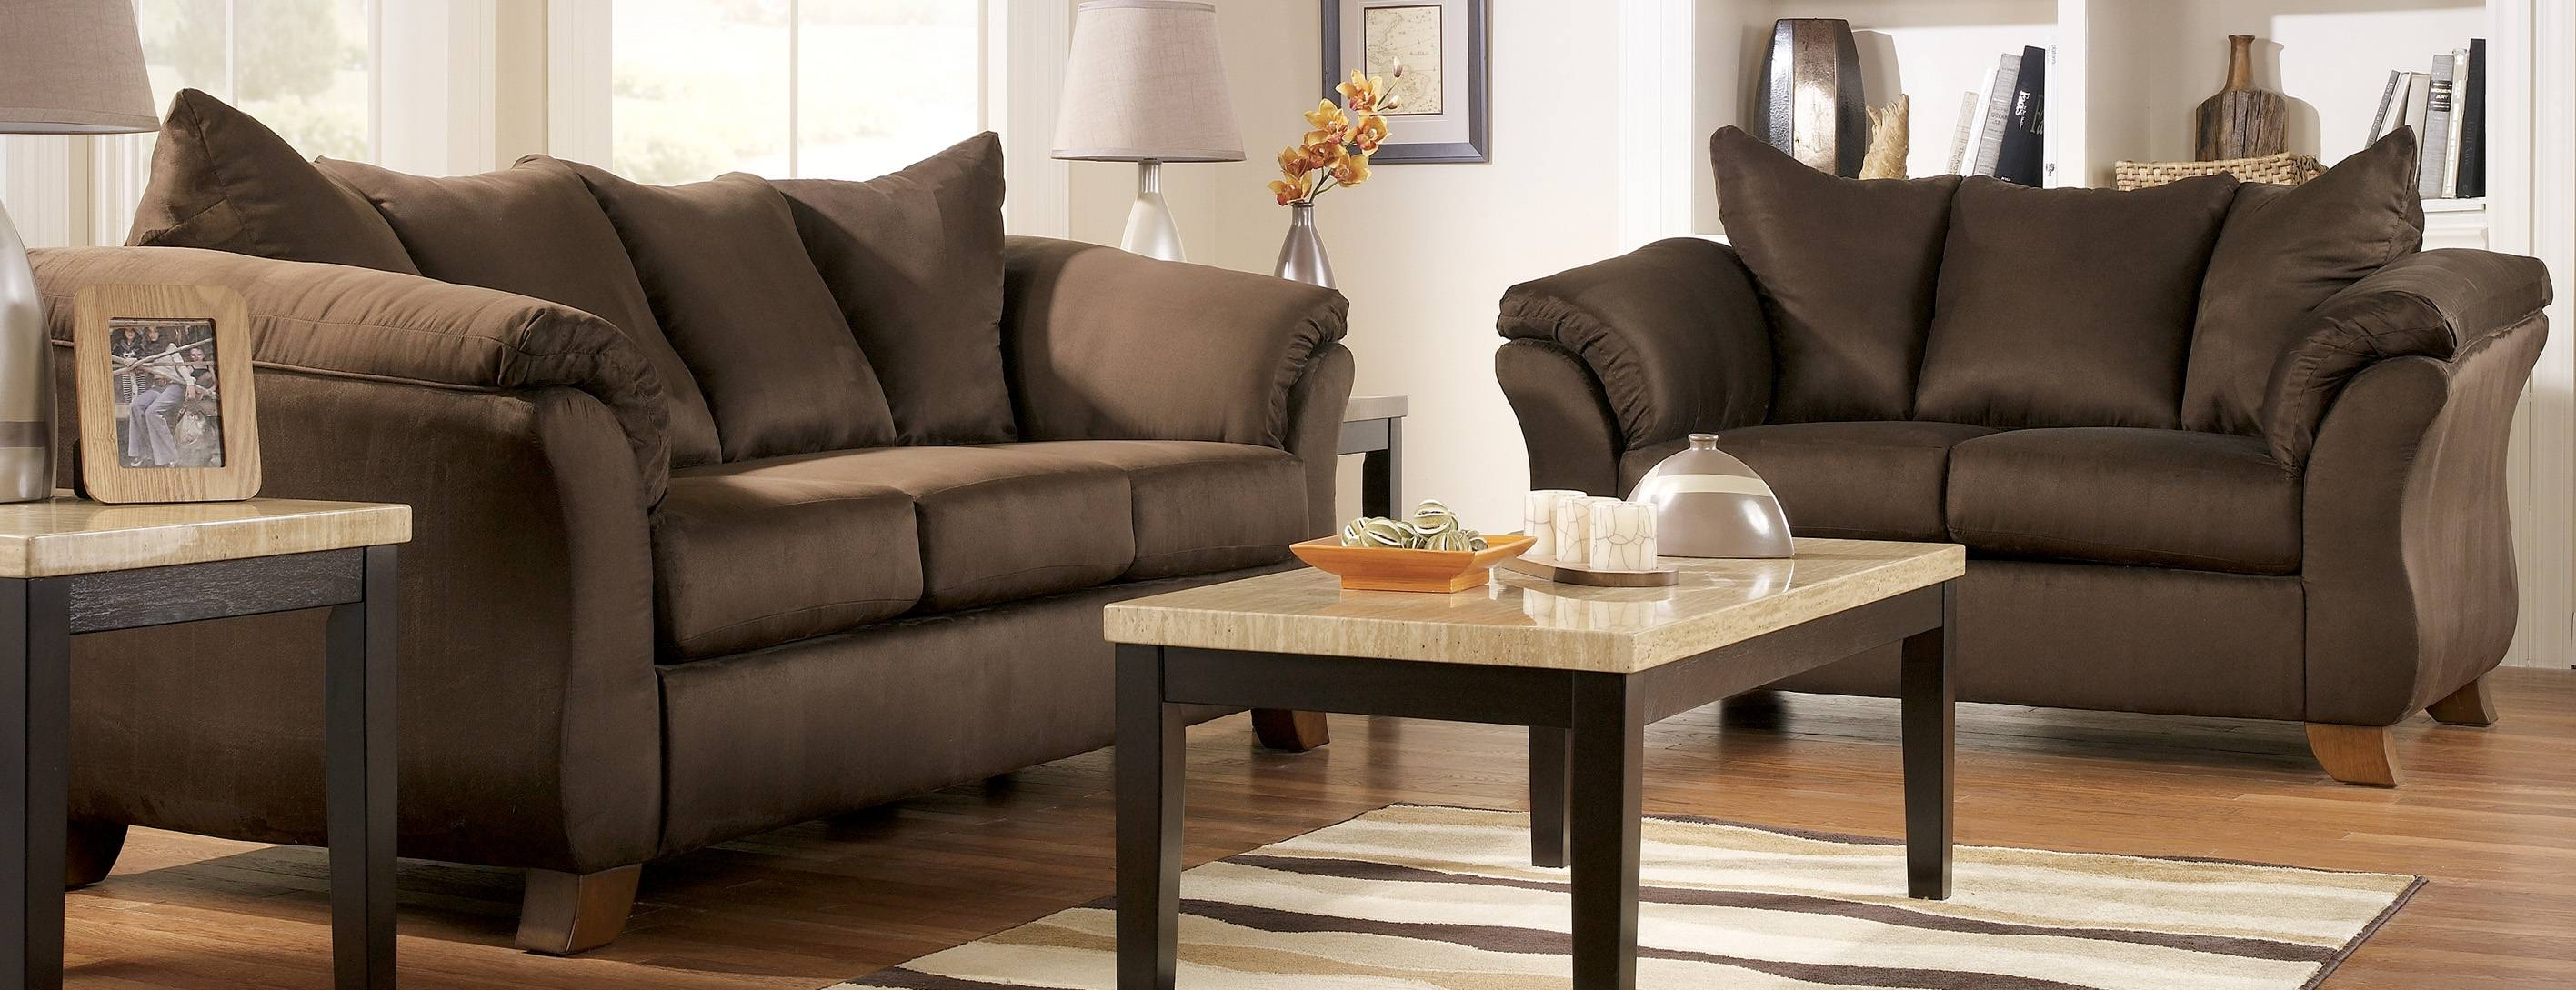 Living Room: Extraordinary Living Room Chair Set Complete Living pertaining to Brown Sofa Chairs (Image 14 of 15)